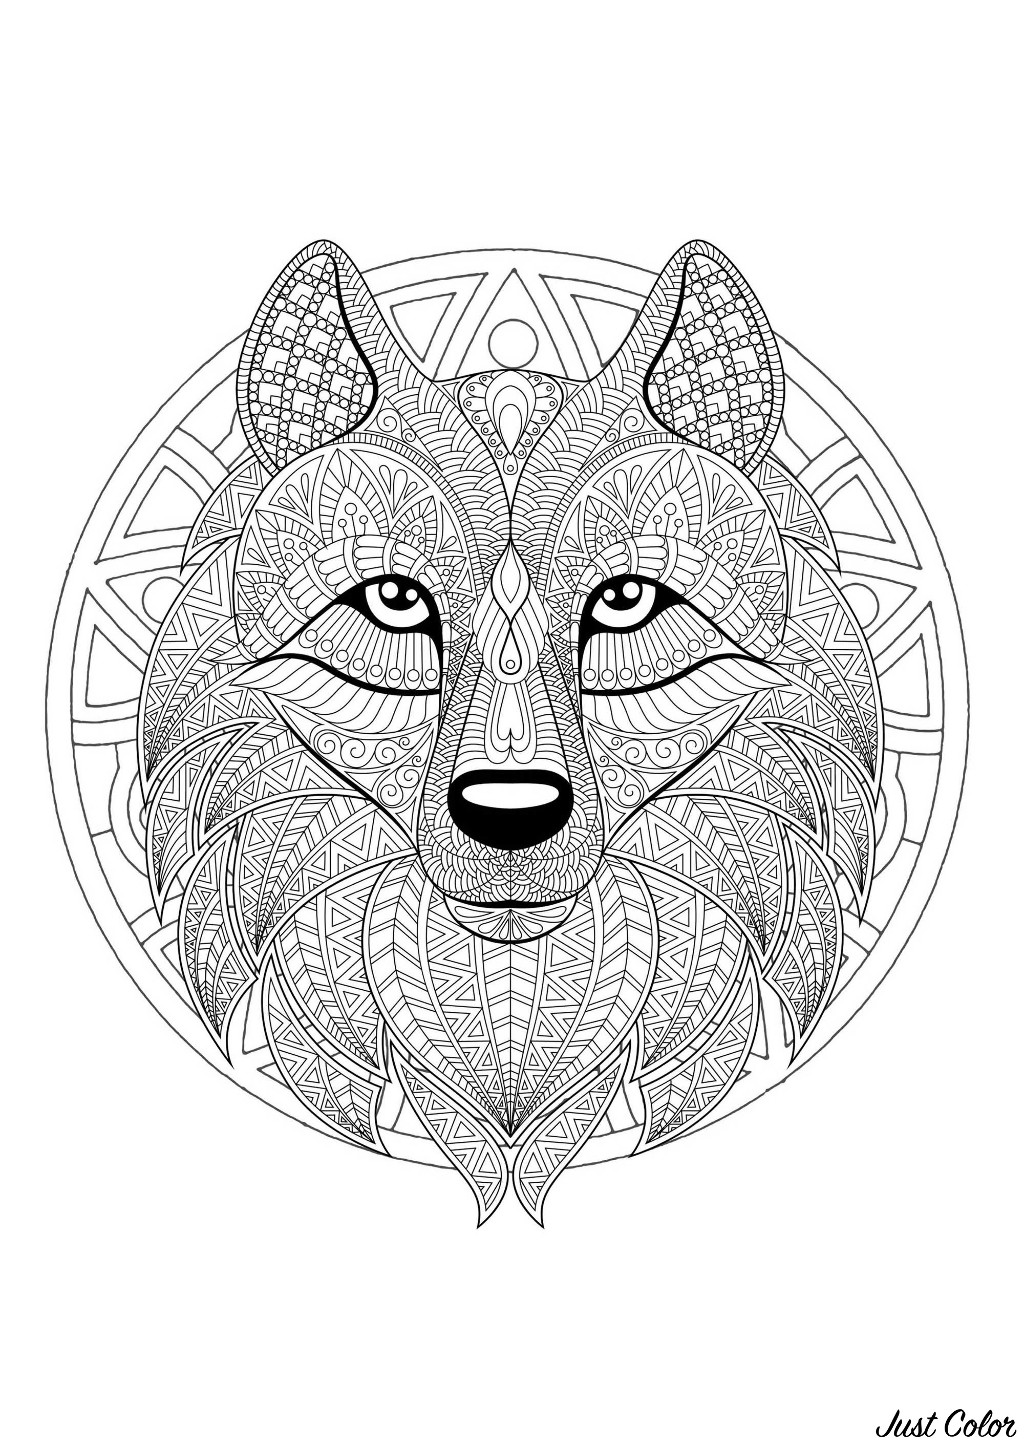 Mandala to color with patterns and incredible Wolf head